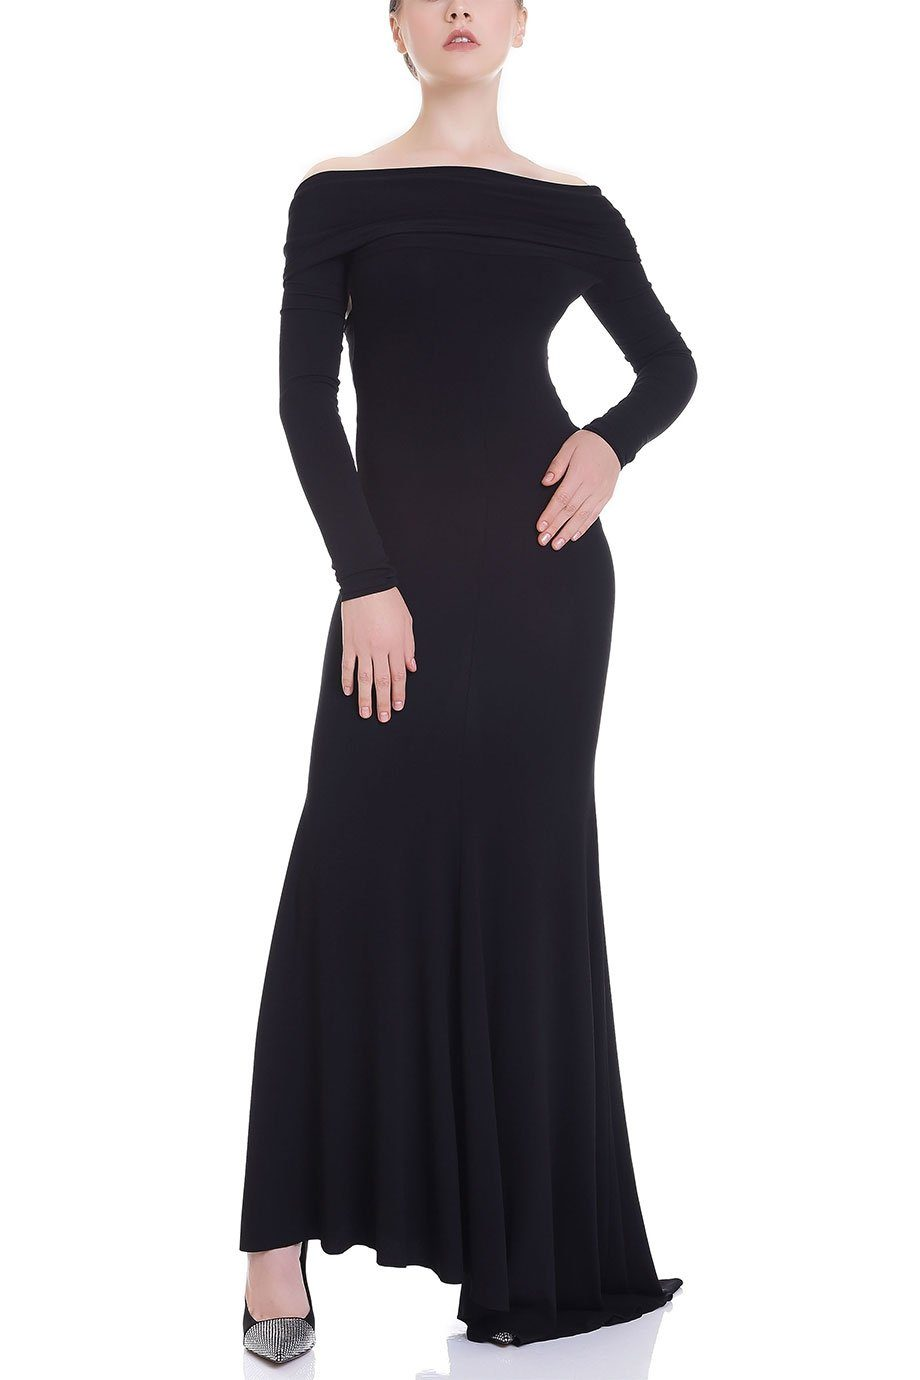 BLACK OFF SHOULDER LONG DRESS